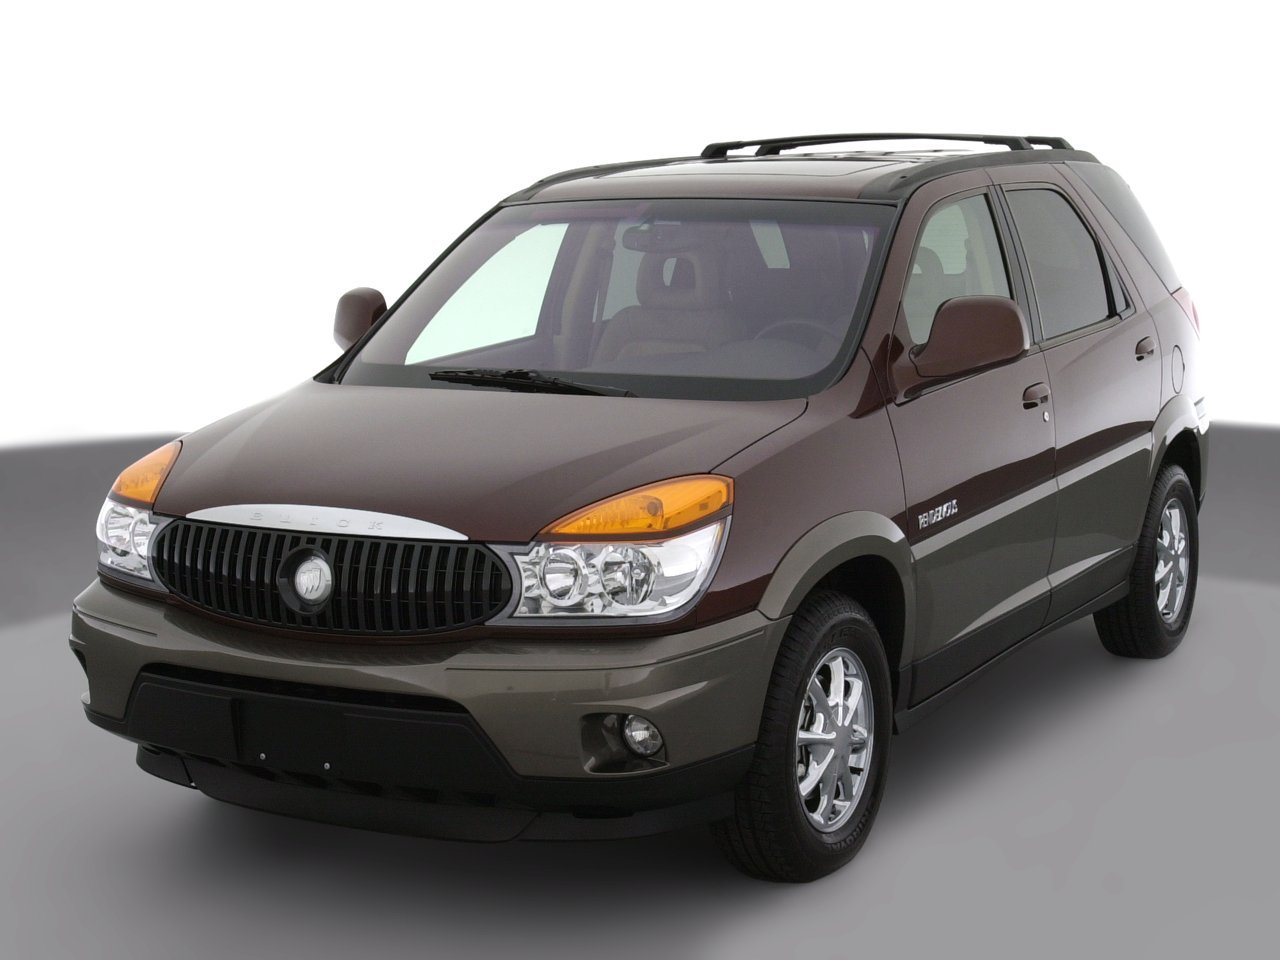 Worksheet. Amazoncom 2003 Buick Rendezvous Reviews Images and Specs Vehicles